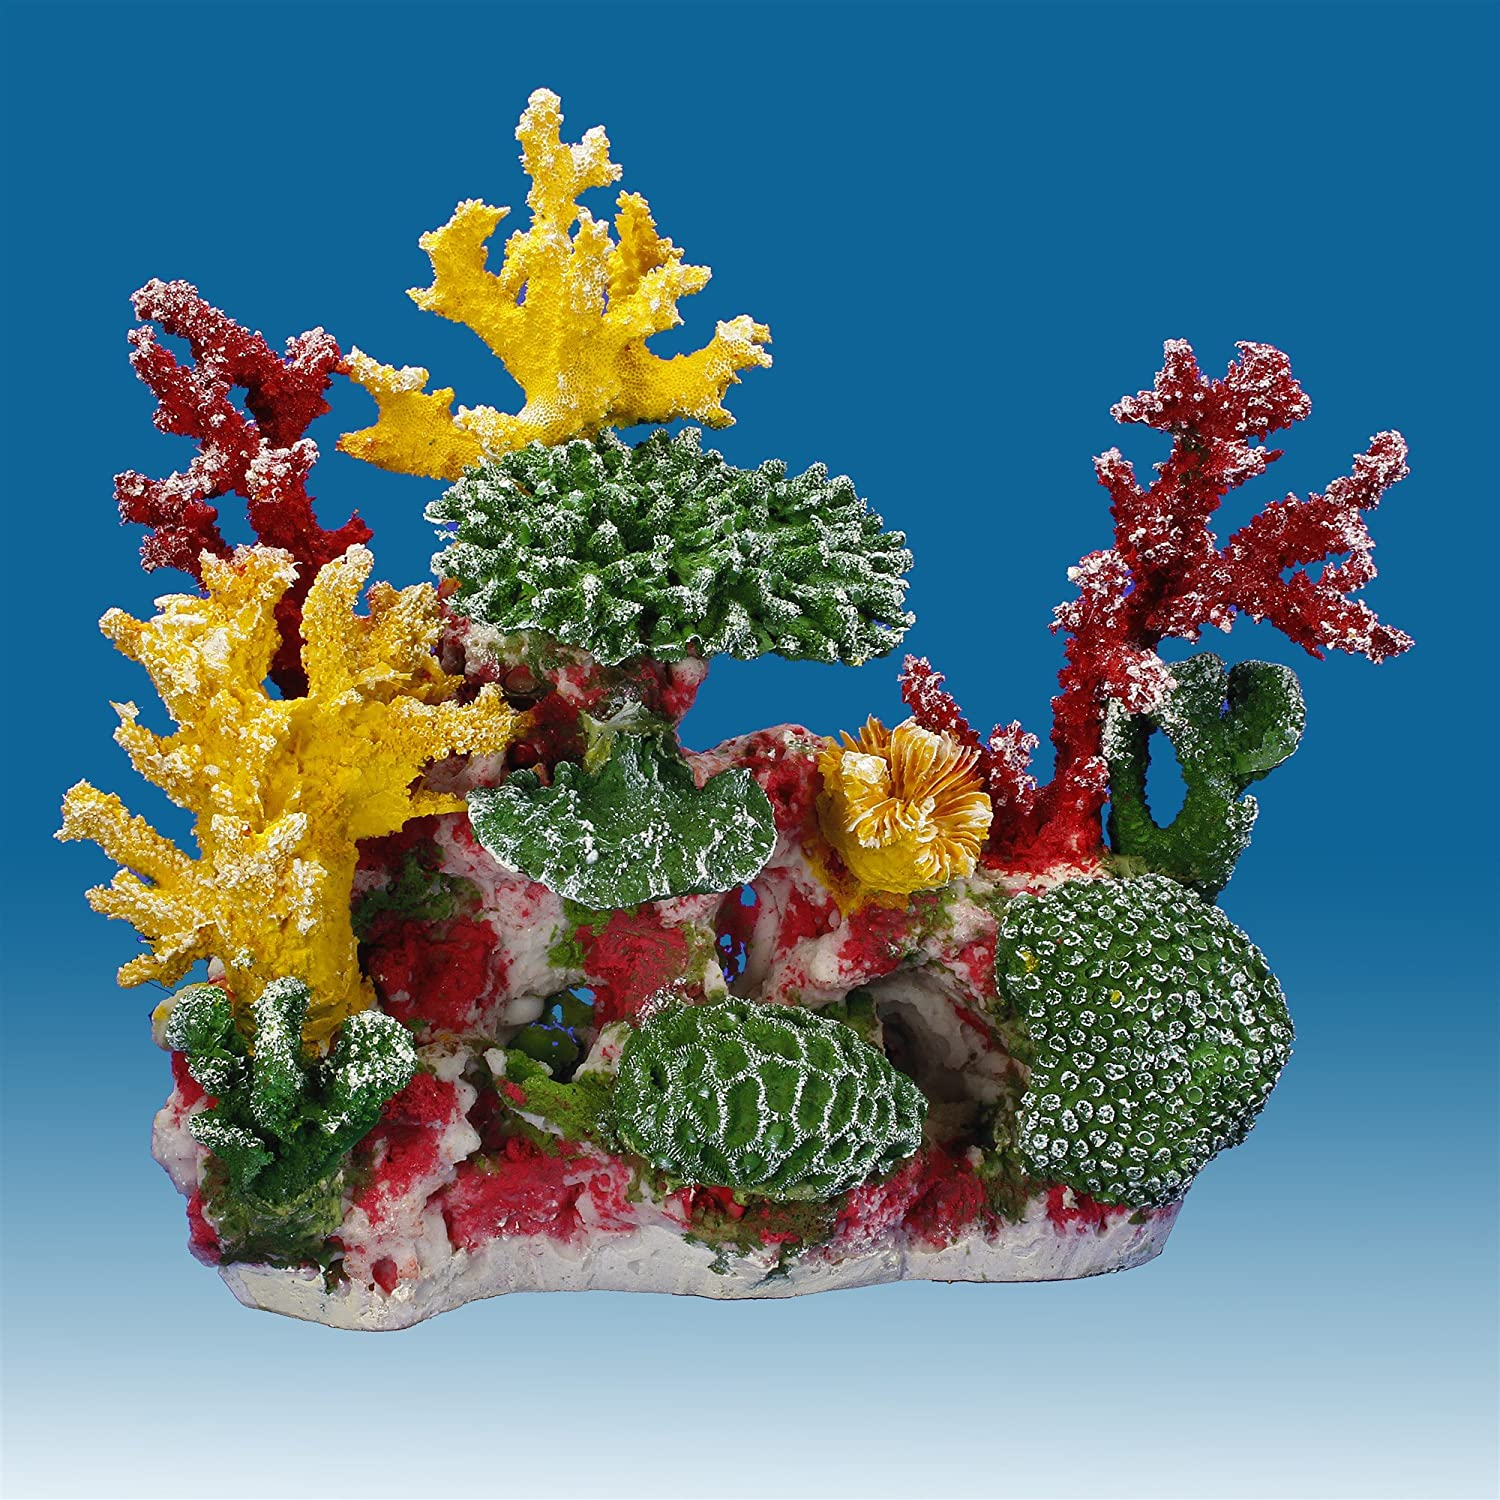 Instant Reef DM056 Artificial Coral Inserts Decor, Fake Coral Reef Decorations for Colorful Freshwater Fish Aquariums, Marine and Saltwater Fish Tanks